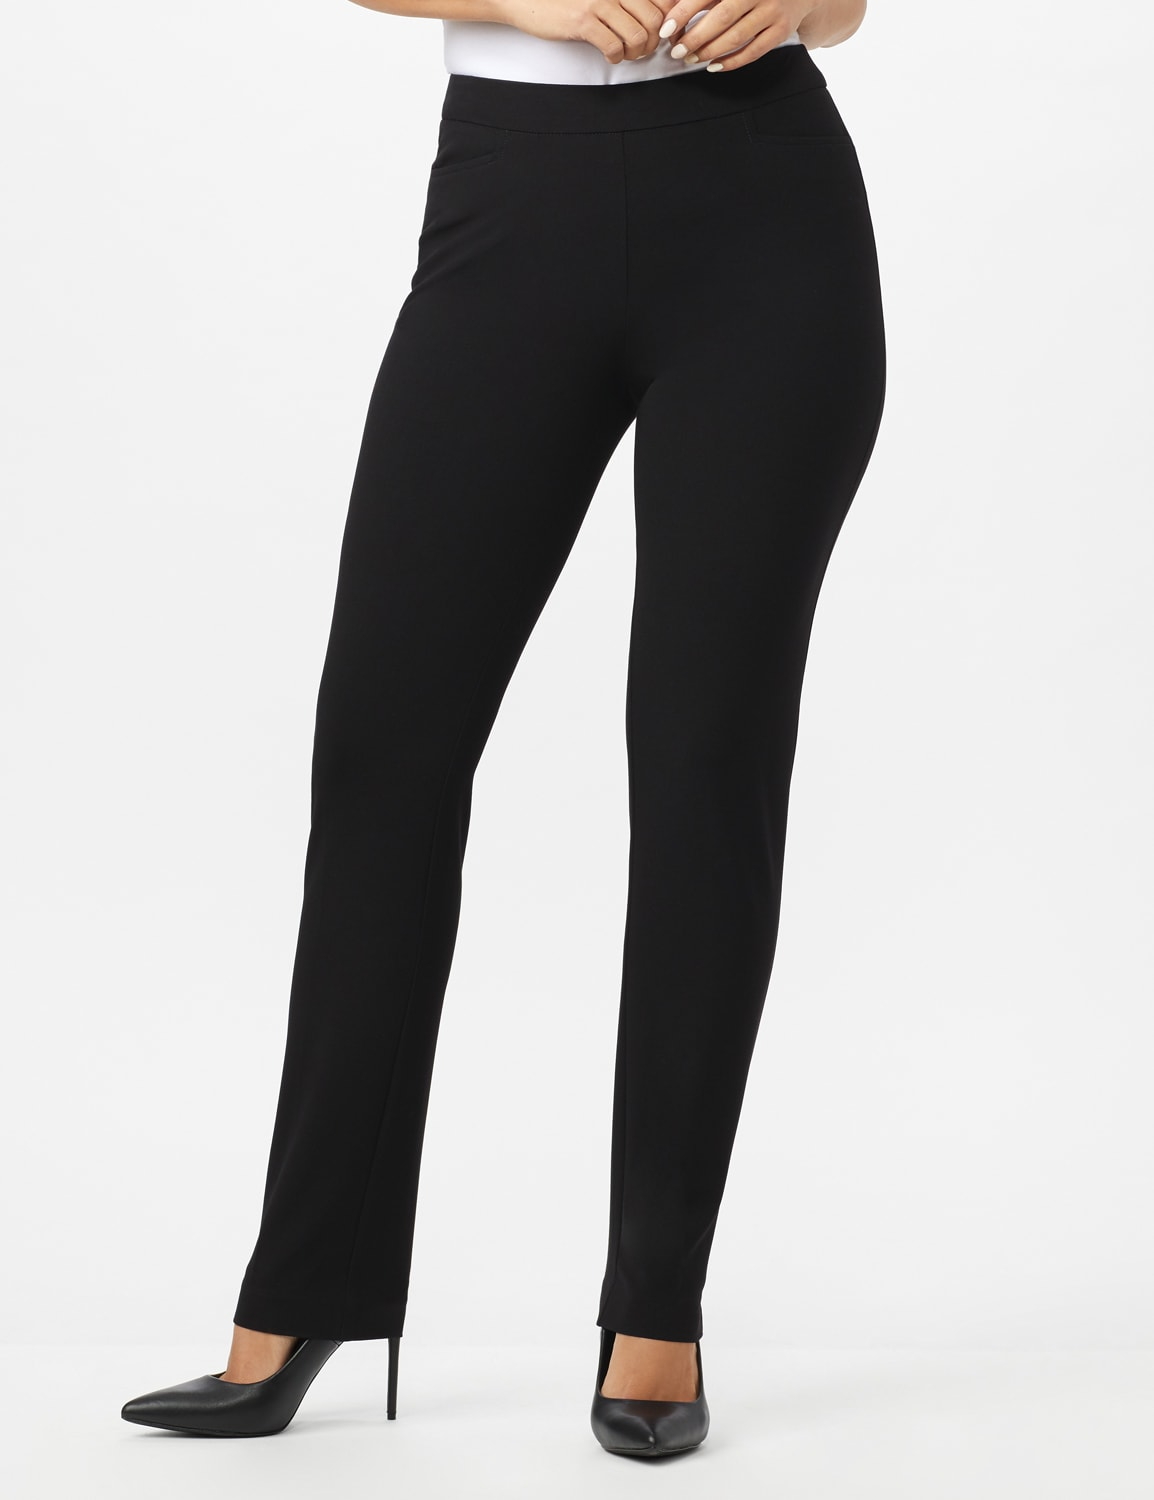 Roz & Ali Secret Agent Pull On Pant with Pockets - Short Length - Black - Front